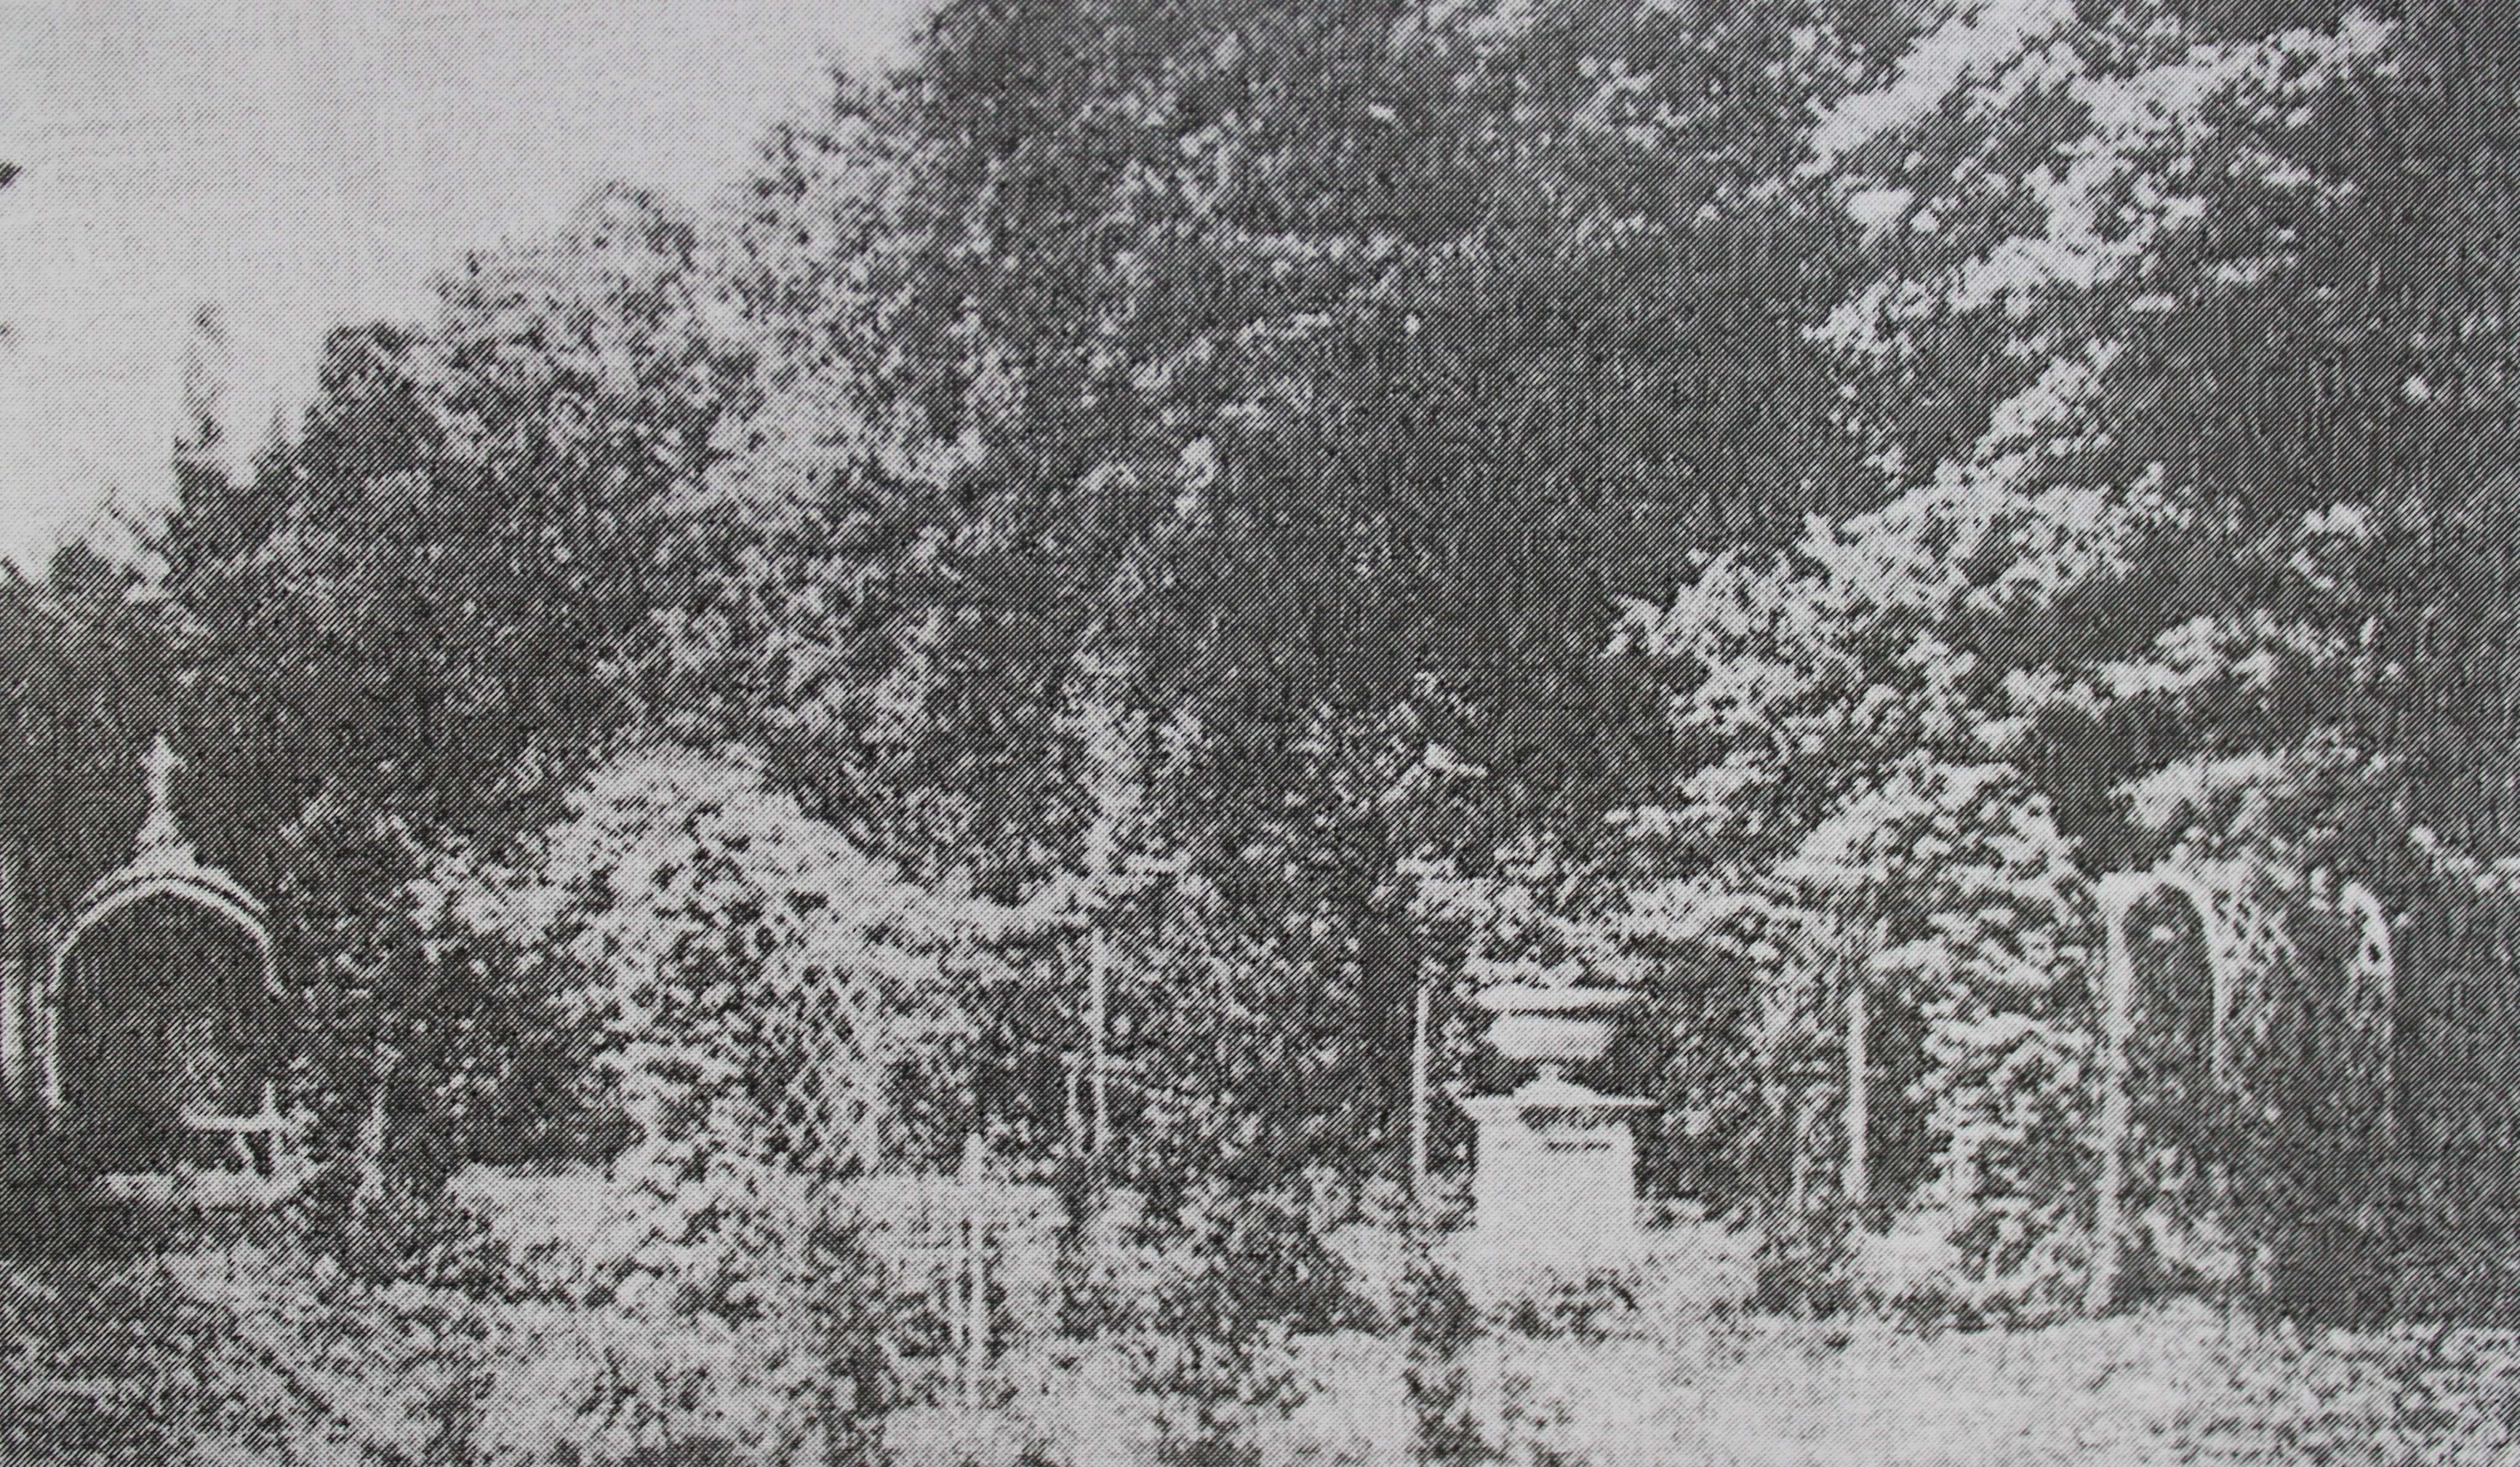 W.H. Fox Talbot's photograph of the Rose Garden taken in June 1840. One of a group of photographs he sent to the Italian botanist Antoino Bertoloni. He wrote back to say that this was the image he liked the best.